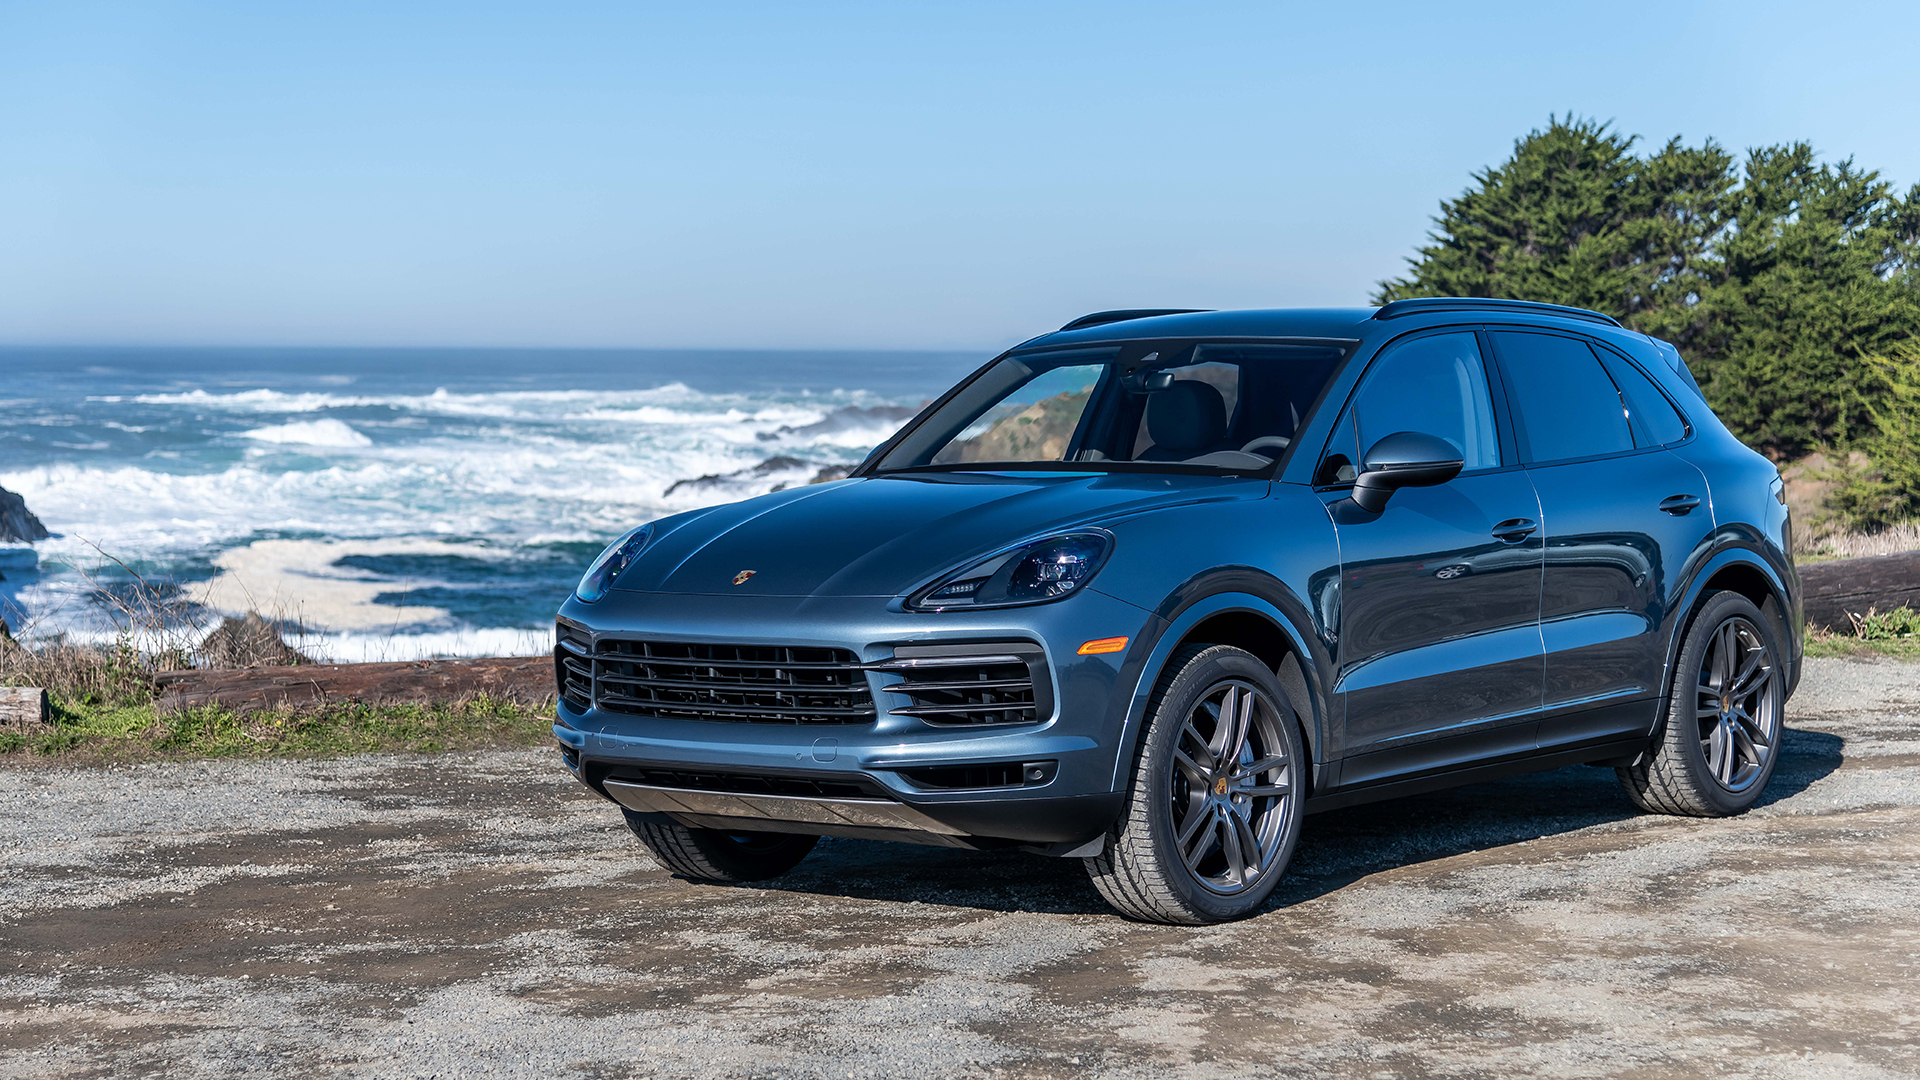 2019 Porsche Cayenne Test Drive Review: SUV, Thy Name Is